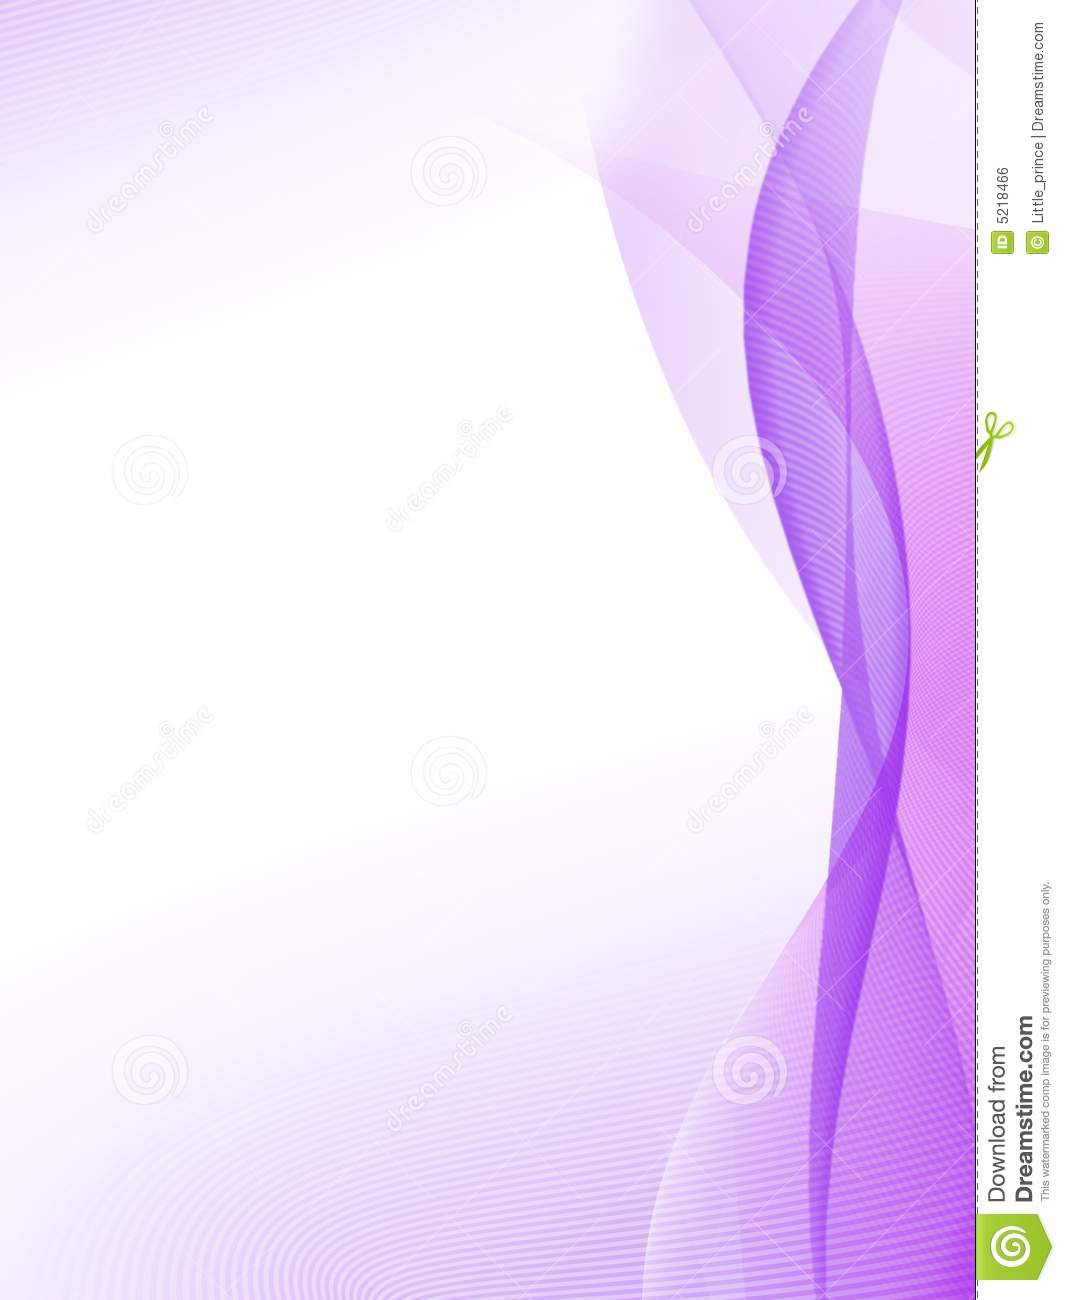 Light Effect Hd Wallpaper Purple Abstract Background Royalty Free Stock Image